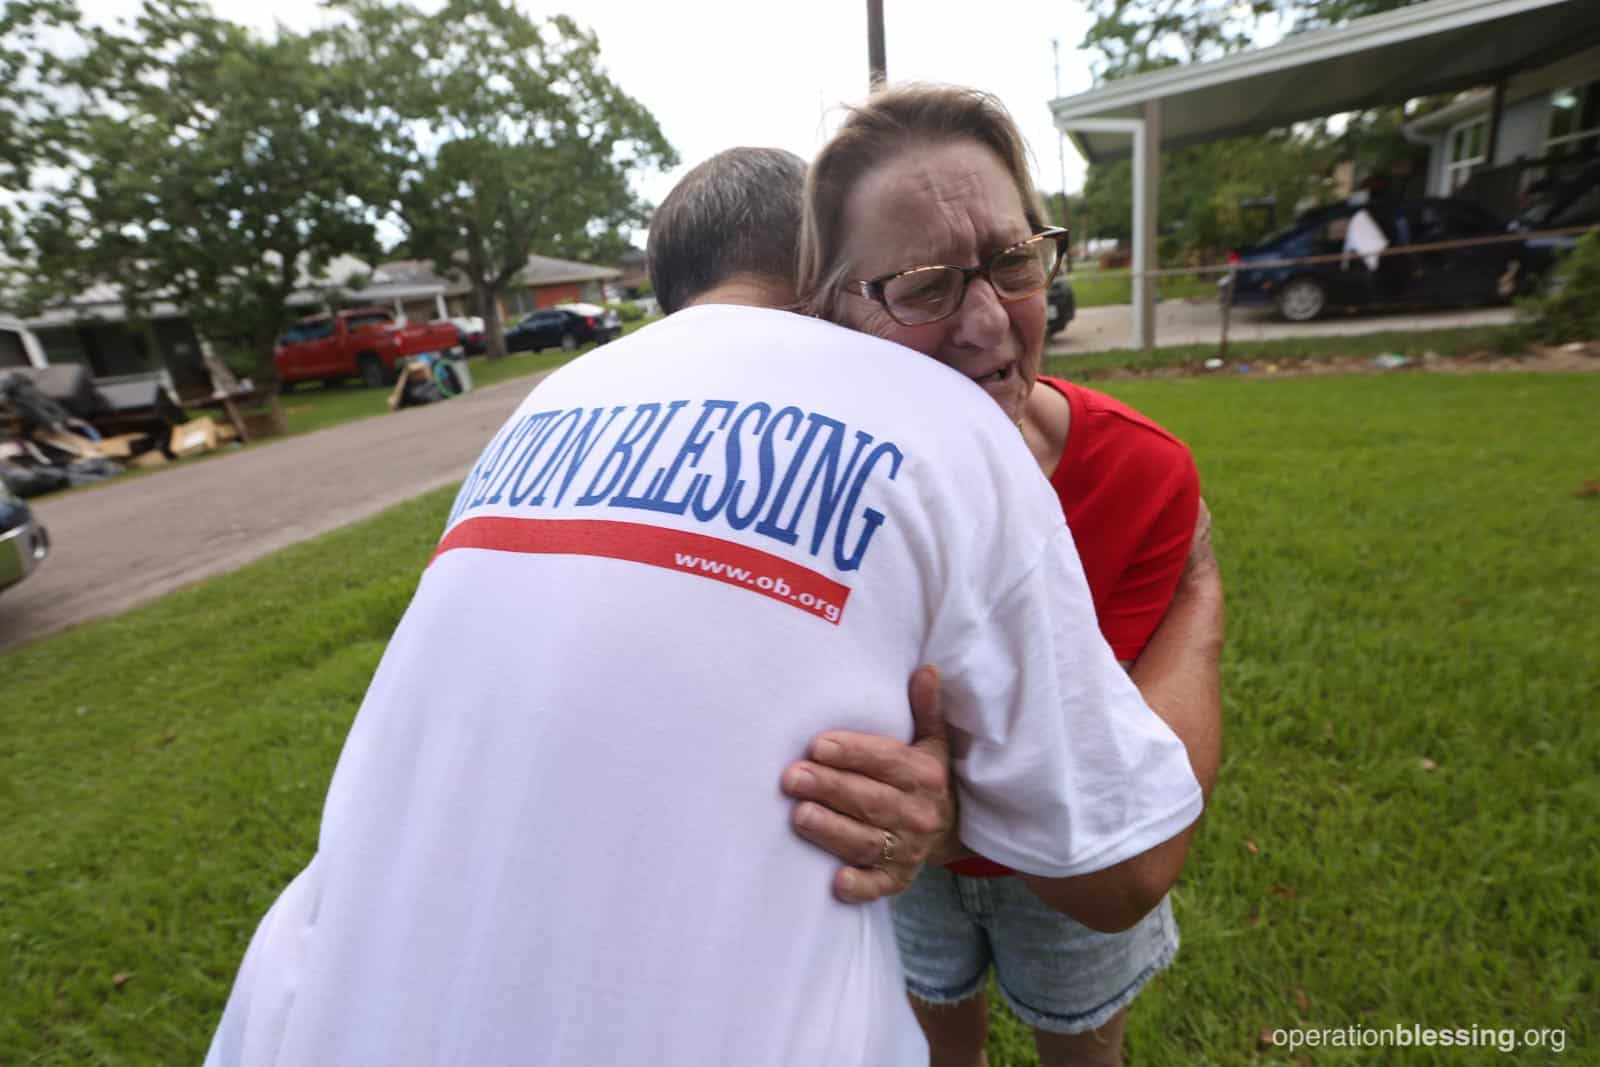 Craig gives a hug to Sandy, who has lost so much after Hurricane Harvey.